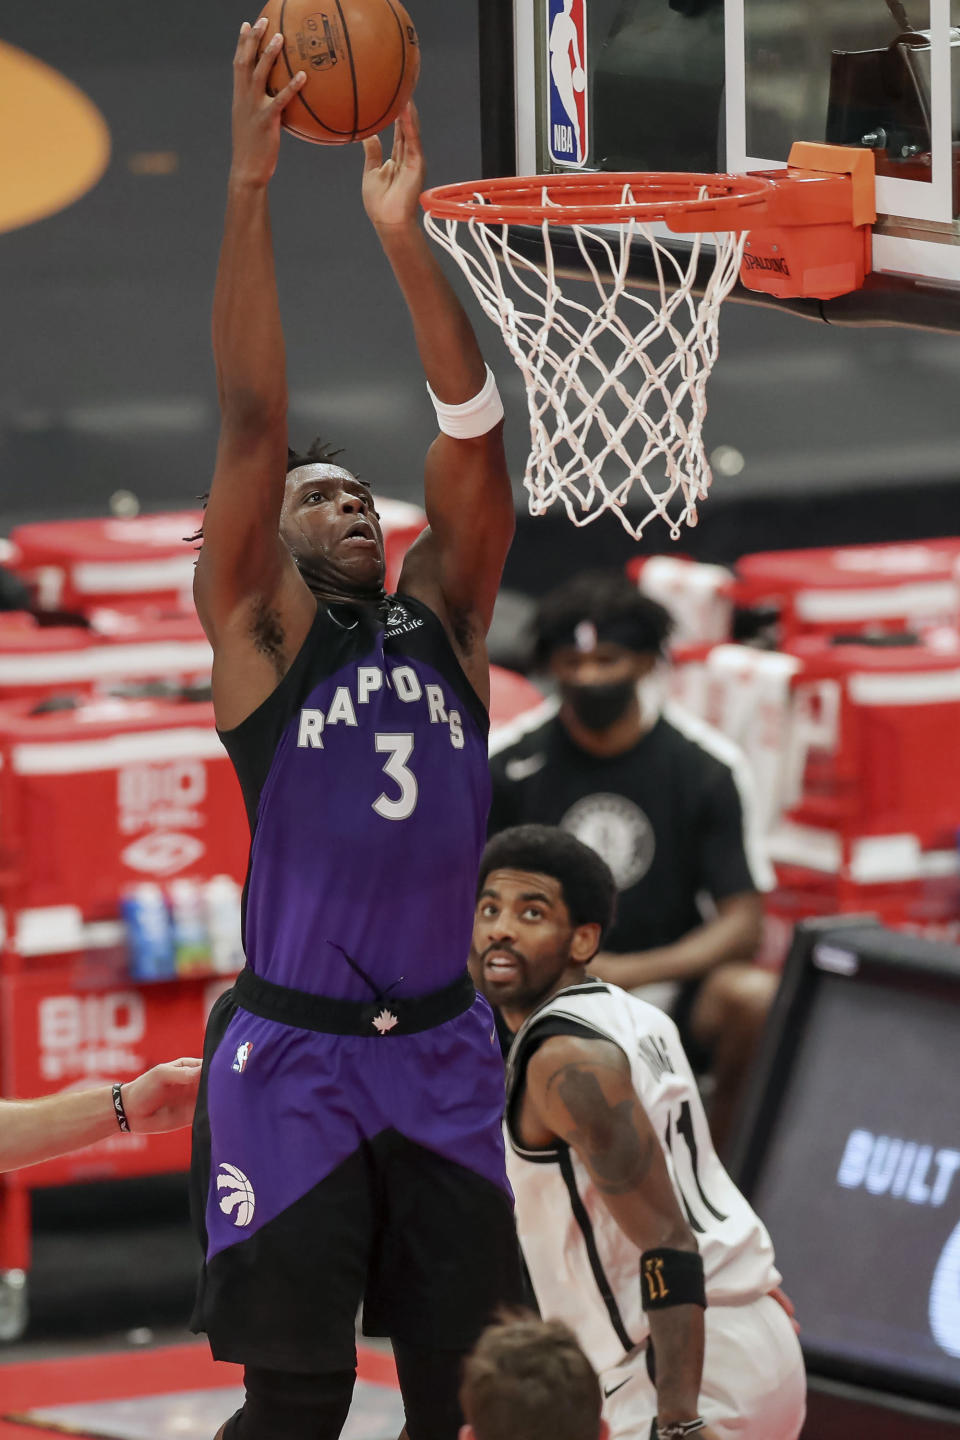 Toronto Raptors' OG Anunoby dunks past Brooklyn Nets' Kyrie Irving during the second half of an NBA basketball game Wednesday, April 21, 2021, in Tampa, Fla. (AP Photo/Mike Carlson)